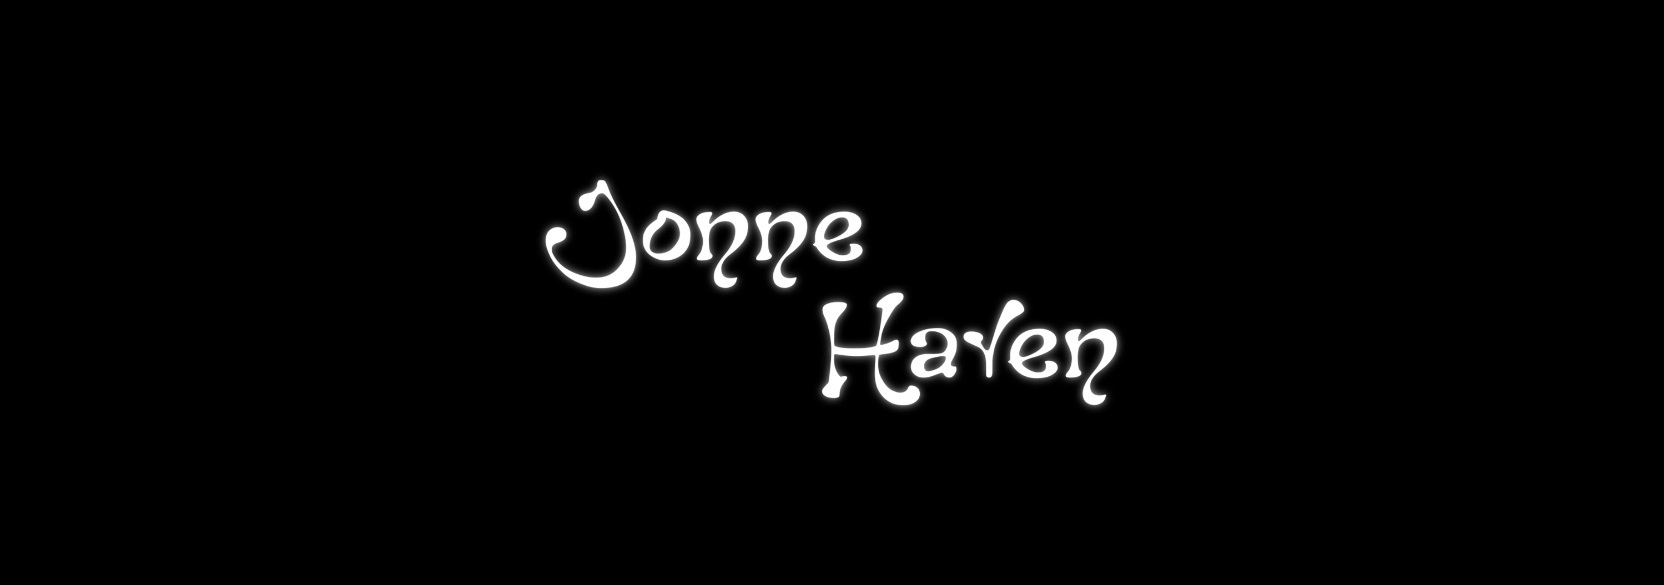 Jonne Haven Video Signature v 7.756.jpg